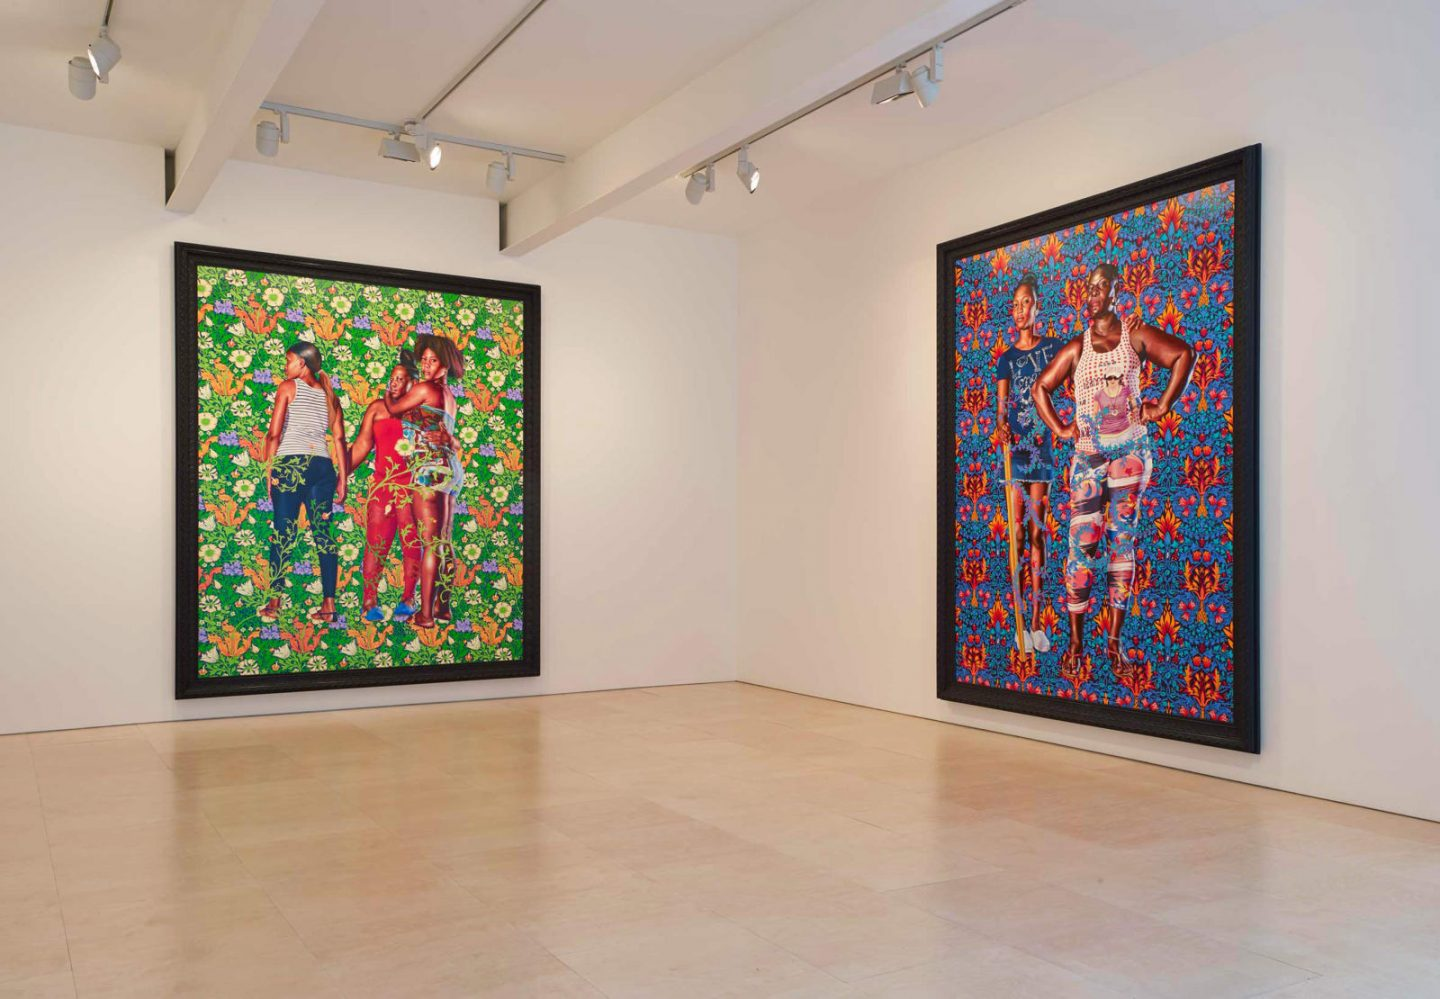 Photos of Kehinde Wiley's The World Stage: Jamaica exhibition